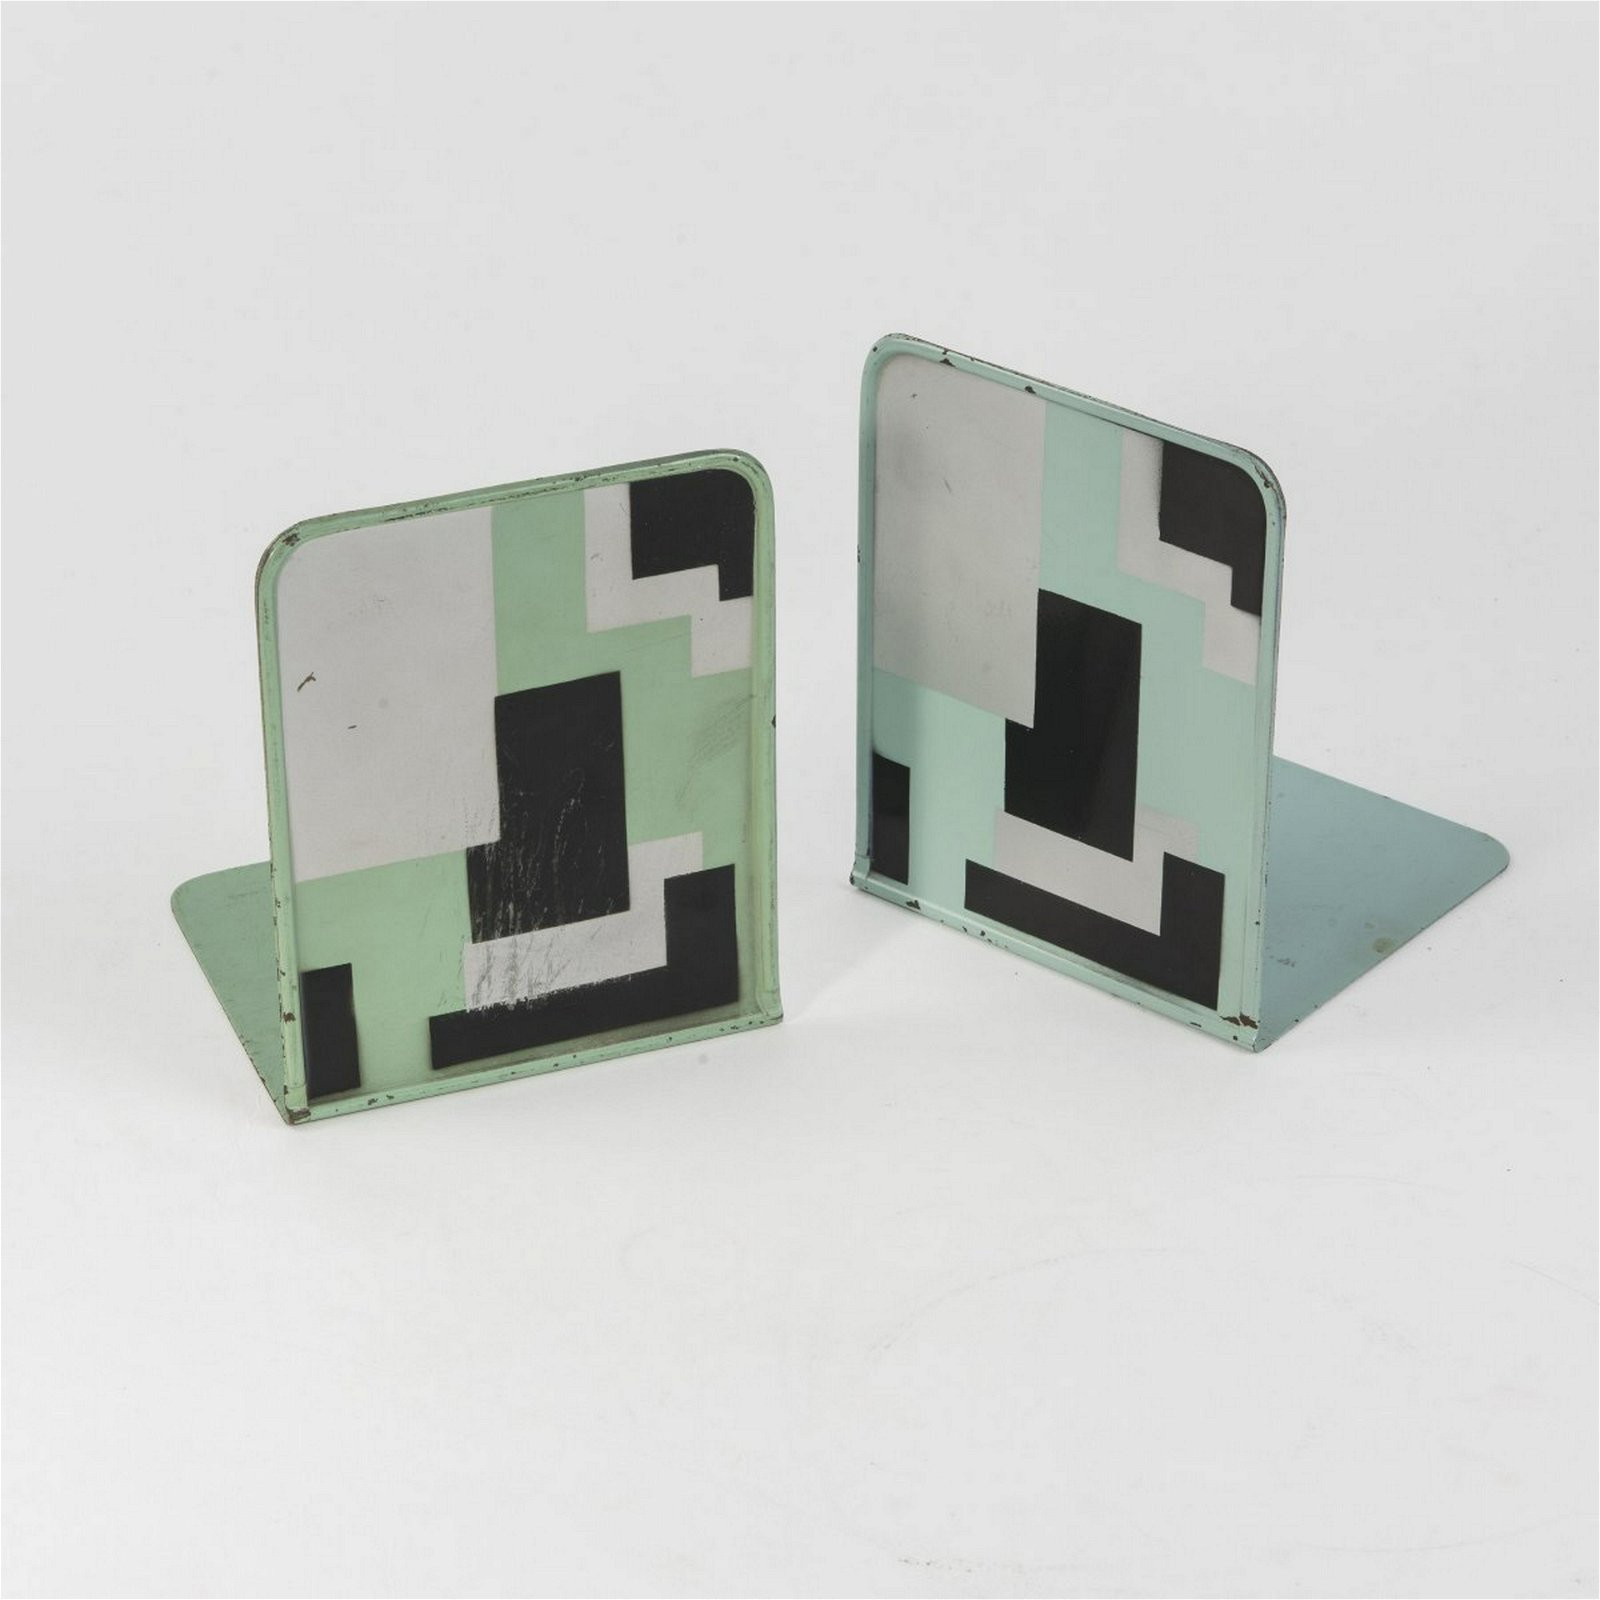 Marianne Brandt, Two bookends, 1929-32